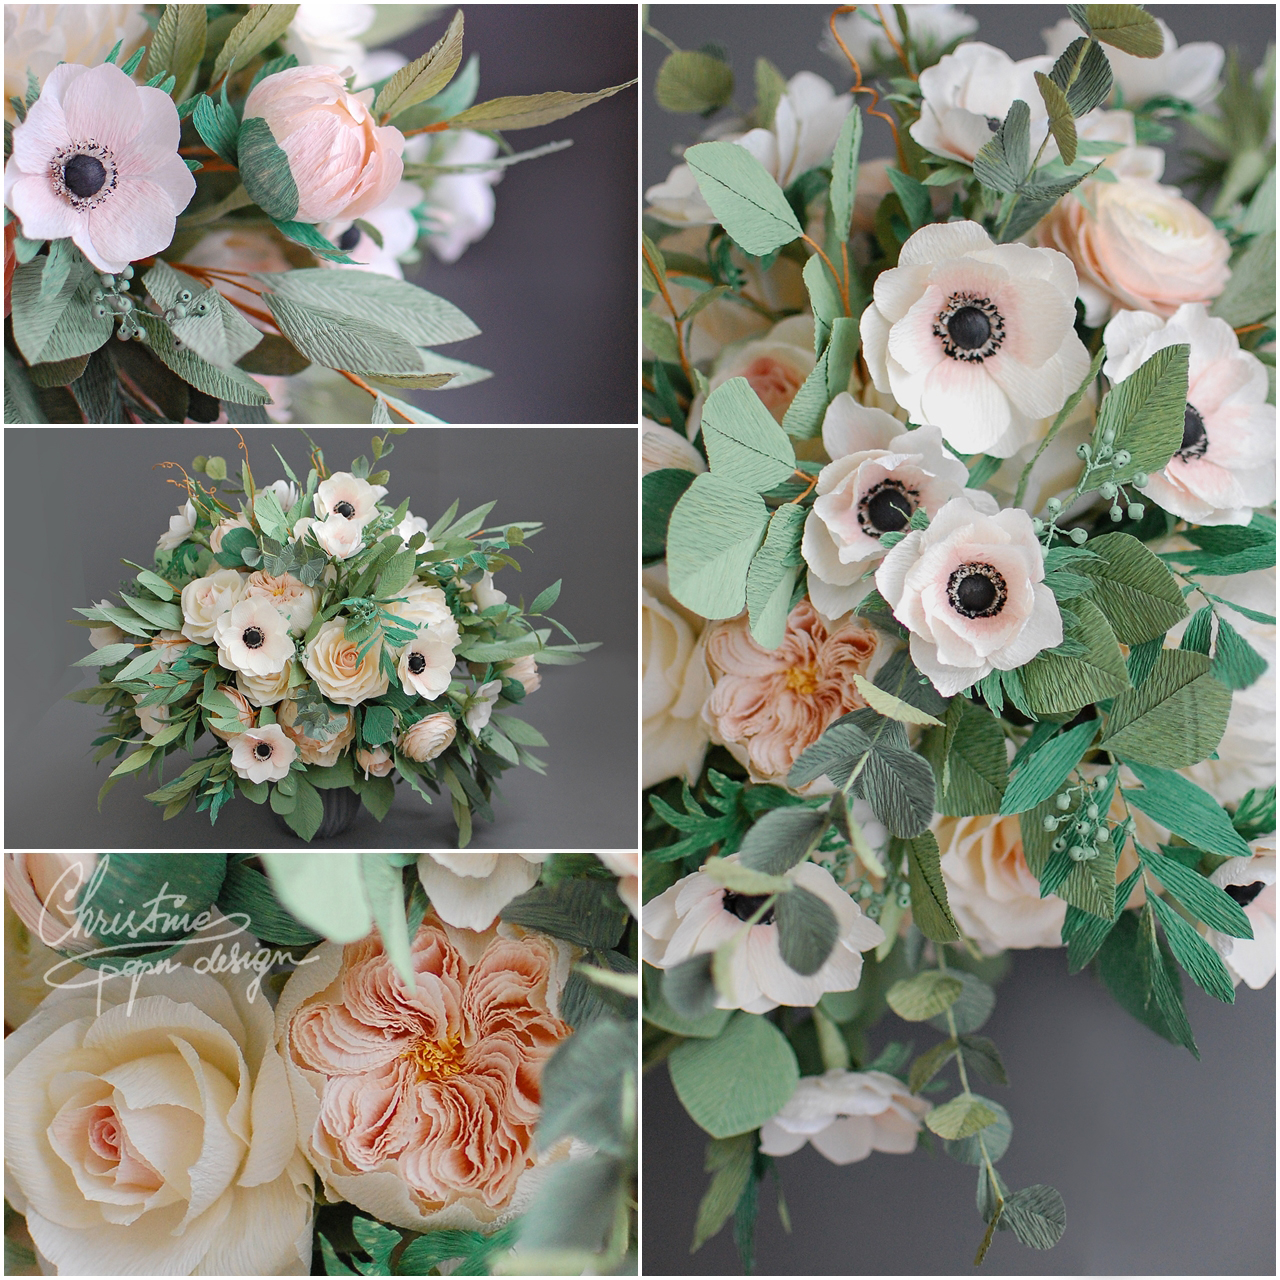 bouquet - Christinepaperdesign